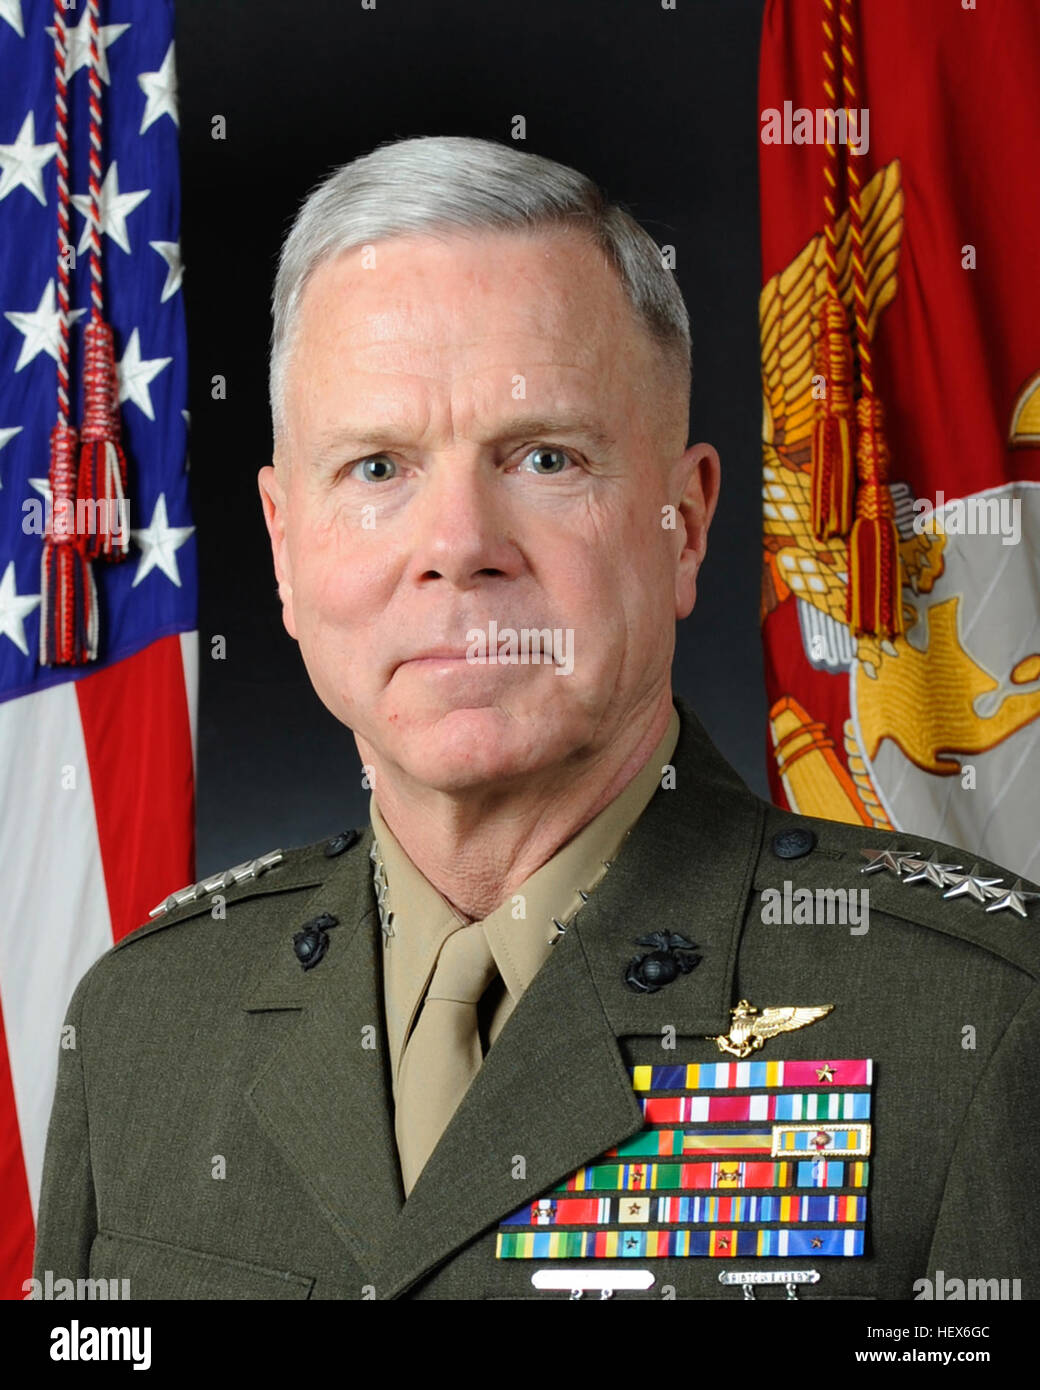 Official portrait, uncovered, of the 35th Commandant of the Marine Corps, Gen. James F. Amos. Gen. Amos is the first Stock Photo